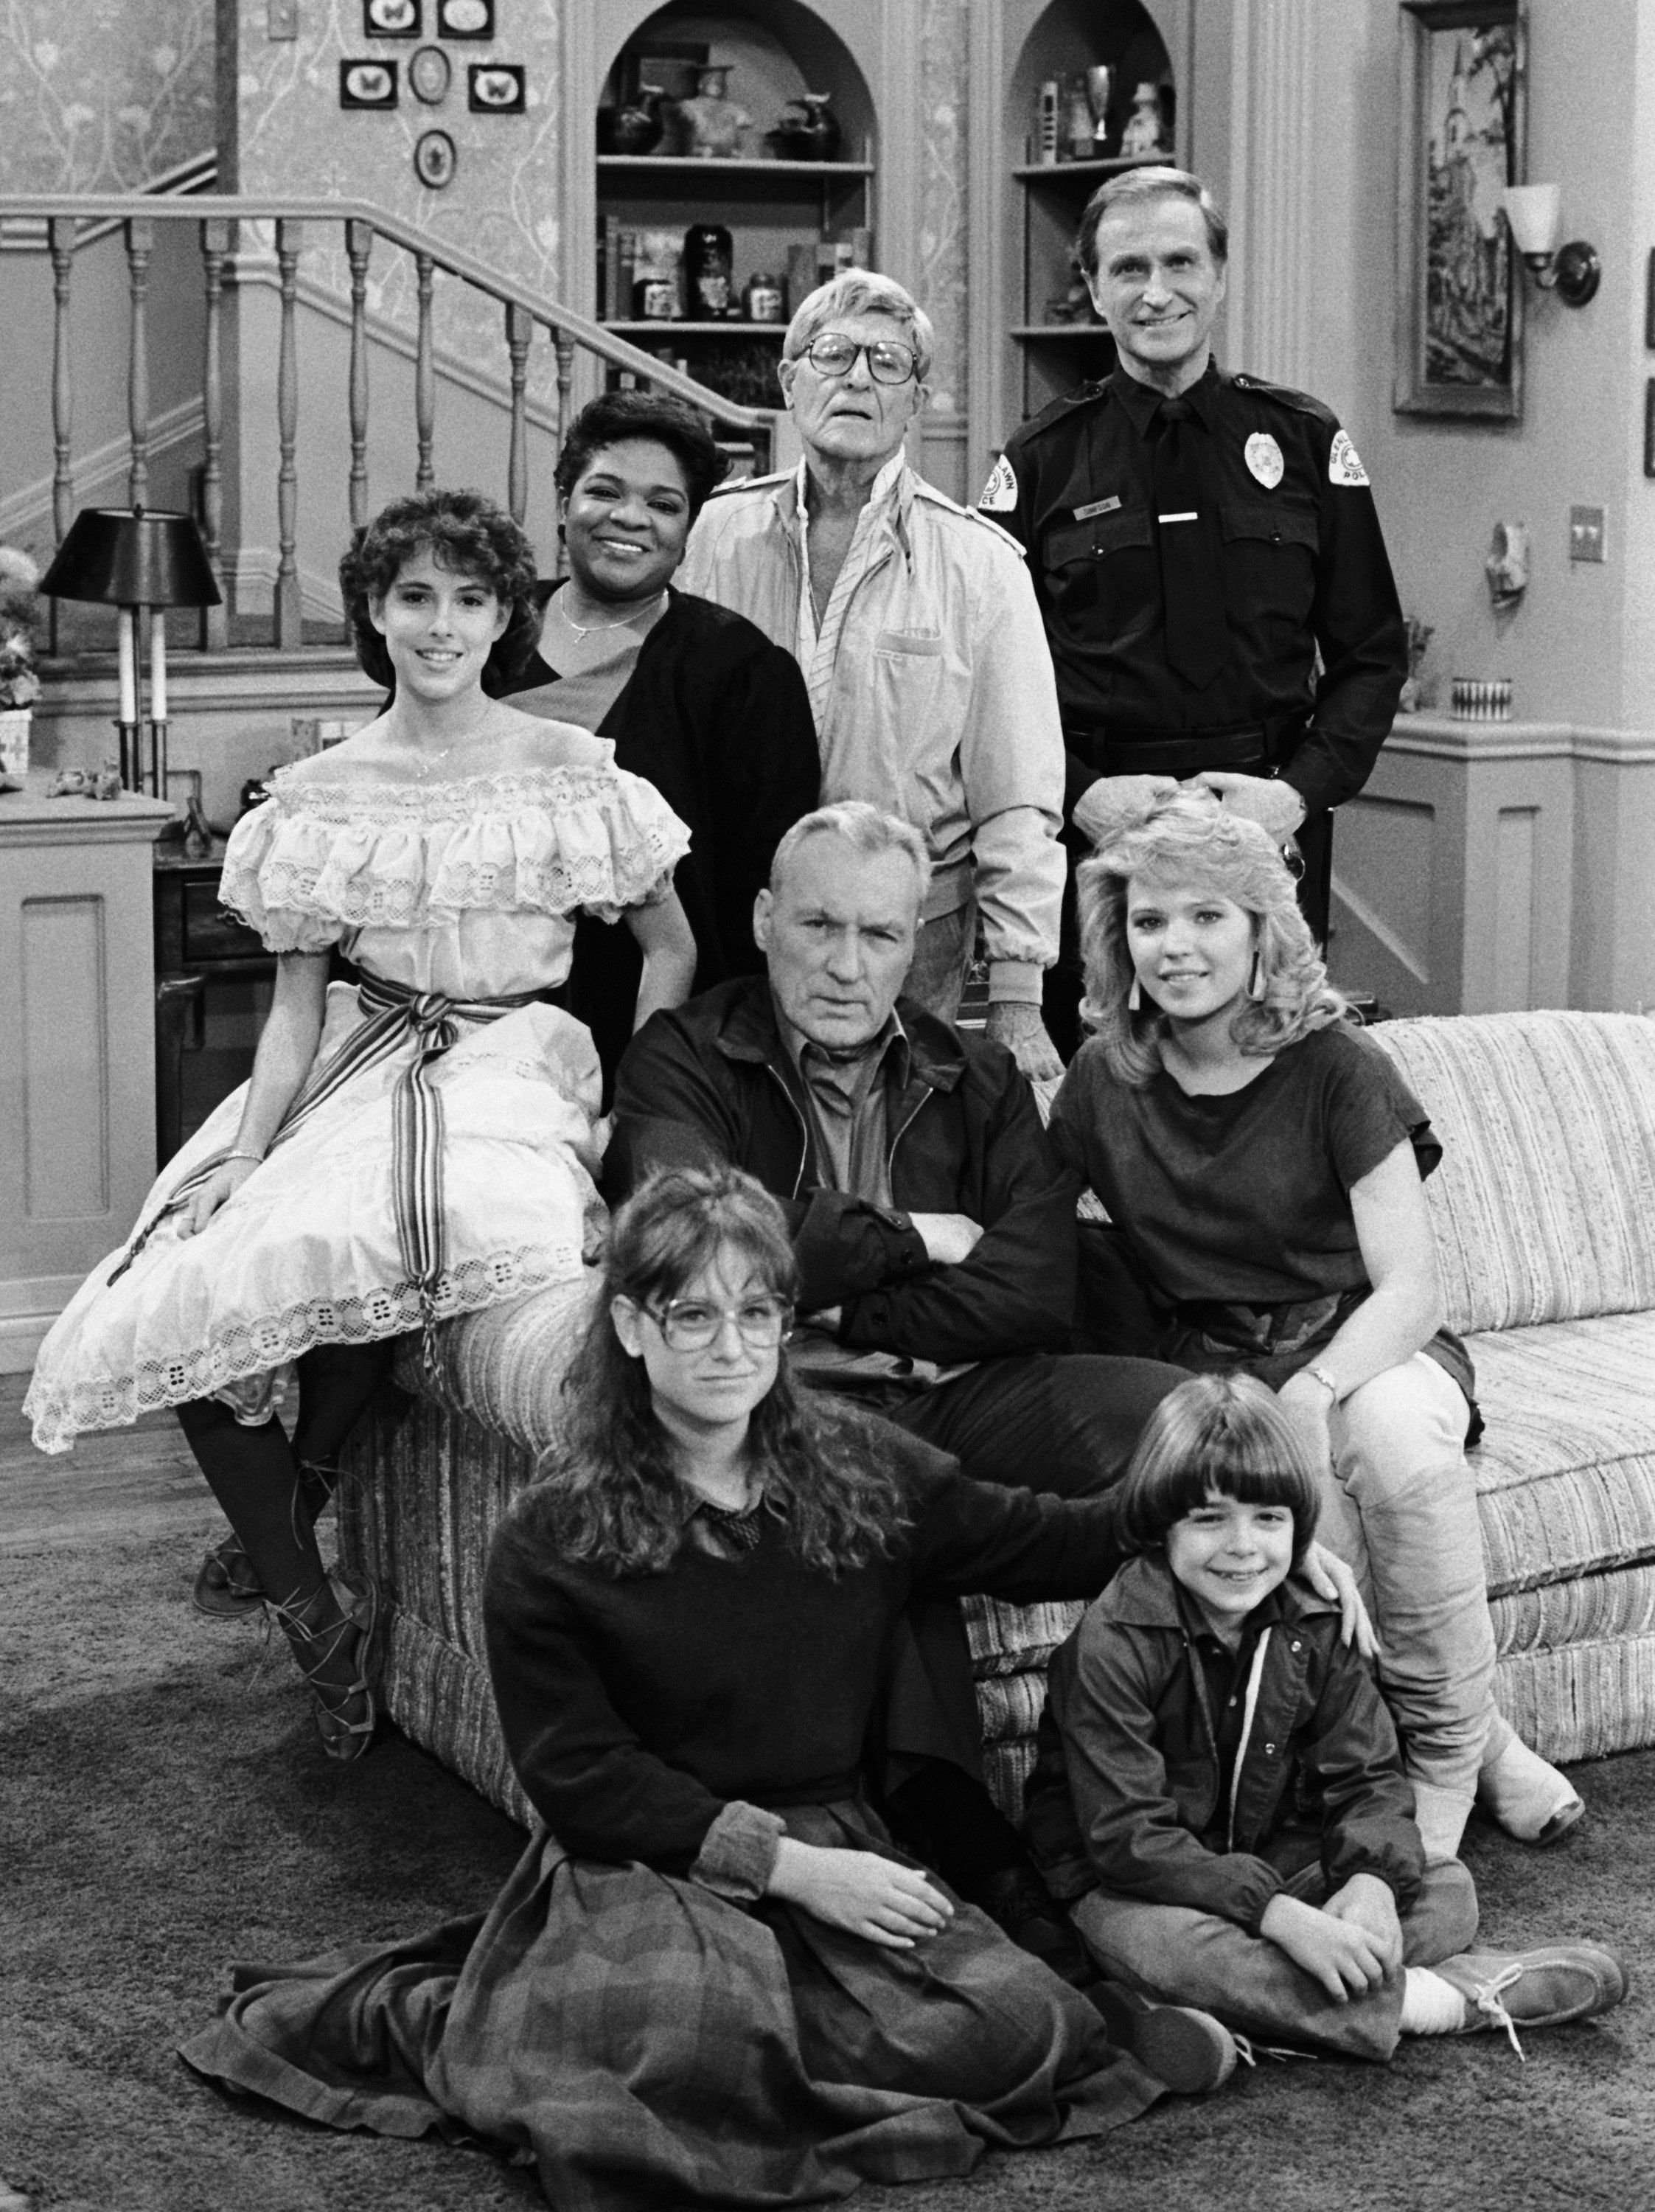 """Lara Jill Miller as Samantha 'Sam' Kaniskyand the rest of the cast of """"Gimme a Breakl!"""" in 1984 